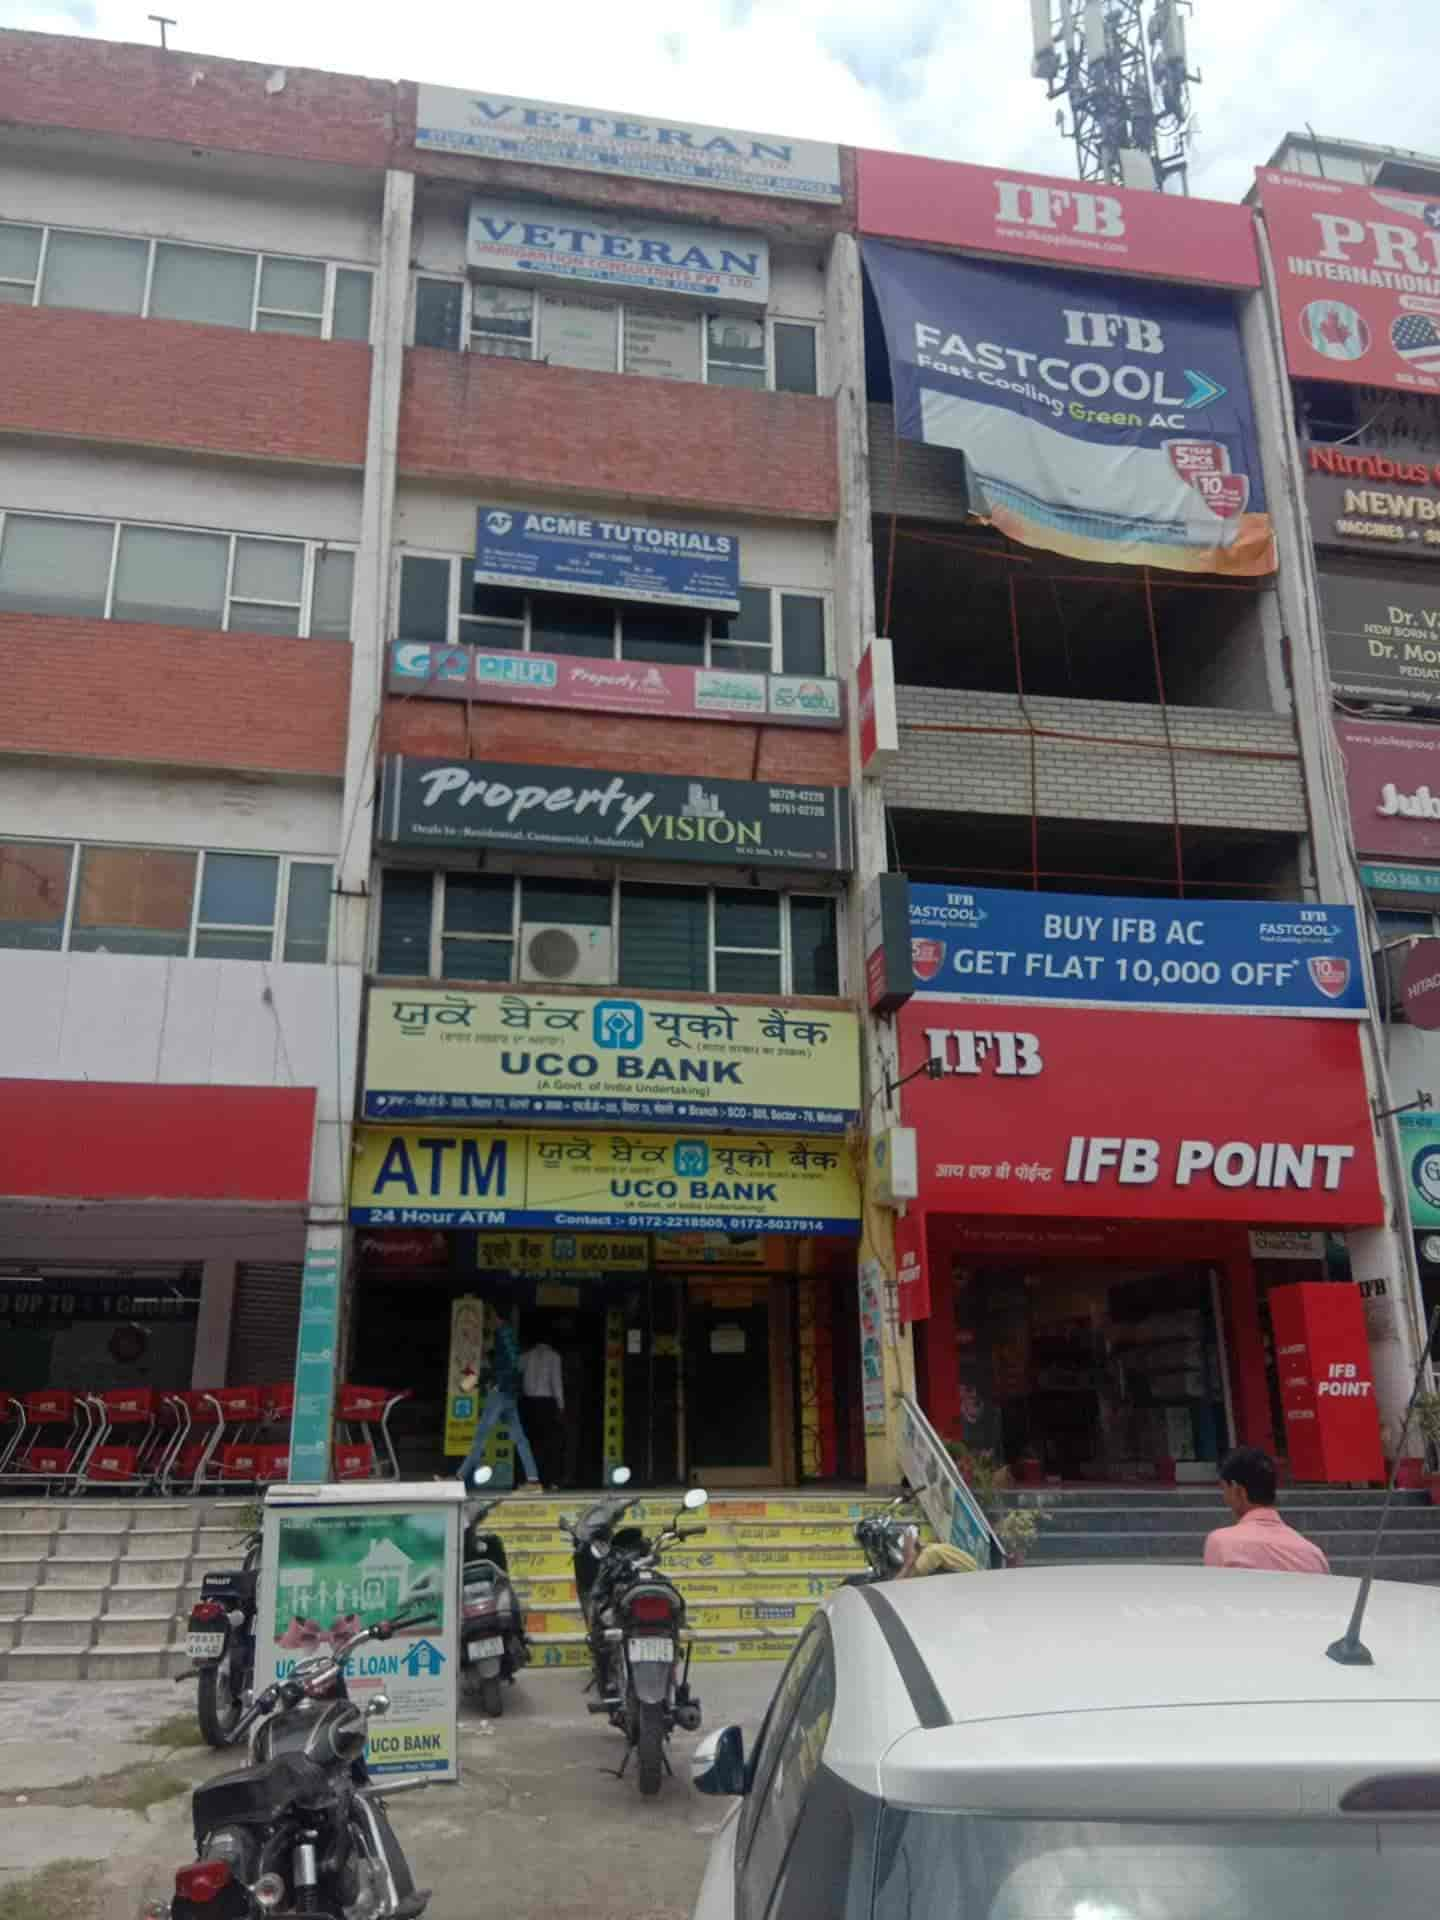 The Ice-cream Caffe 19 Photos, Kharar, Chandigarh- Pictures